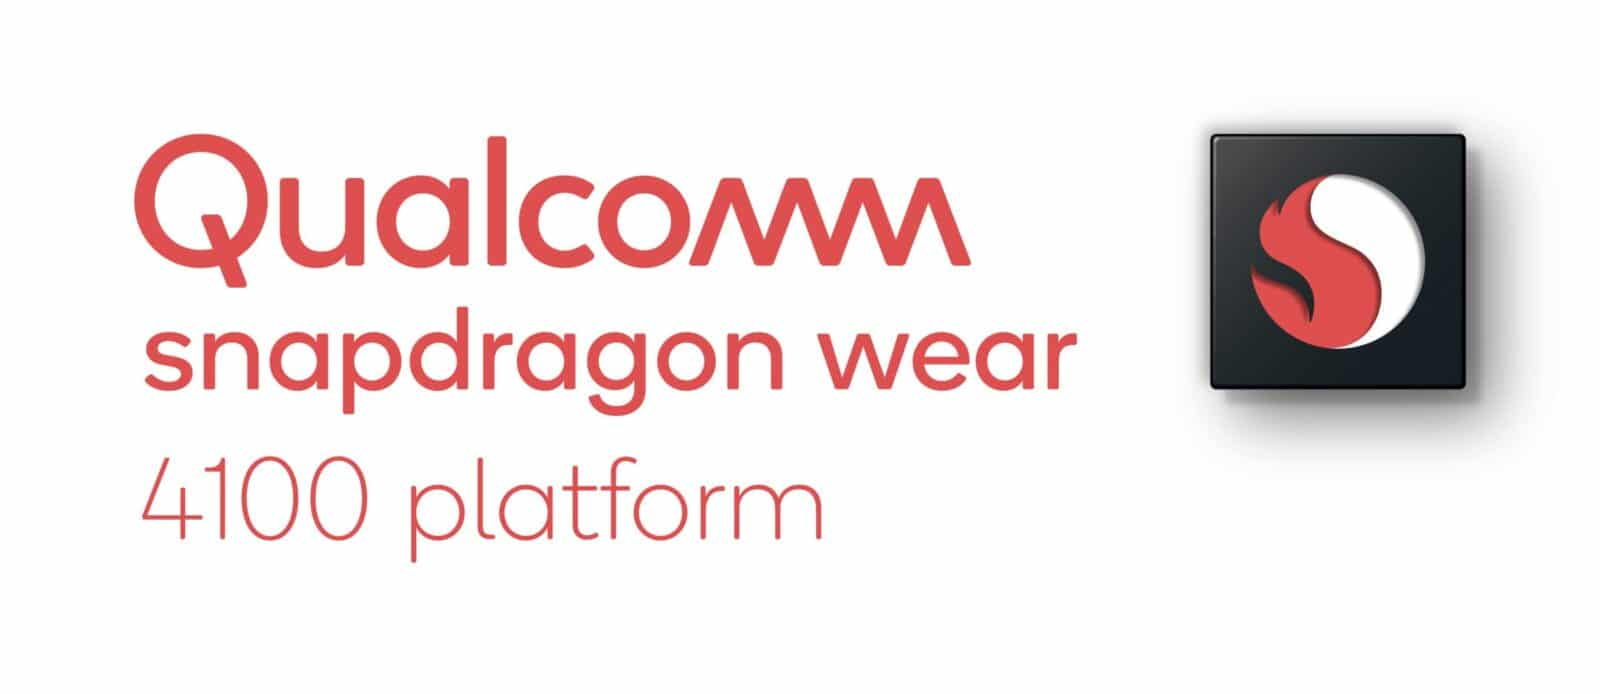 qualcomm-snapdragon-wear-4100